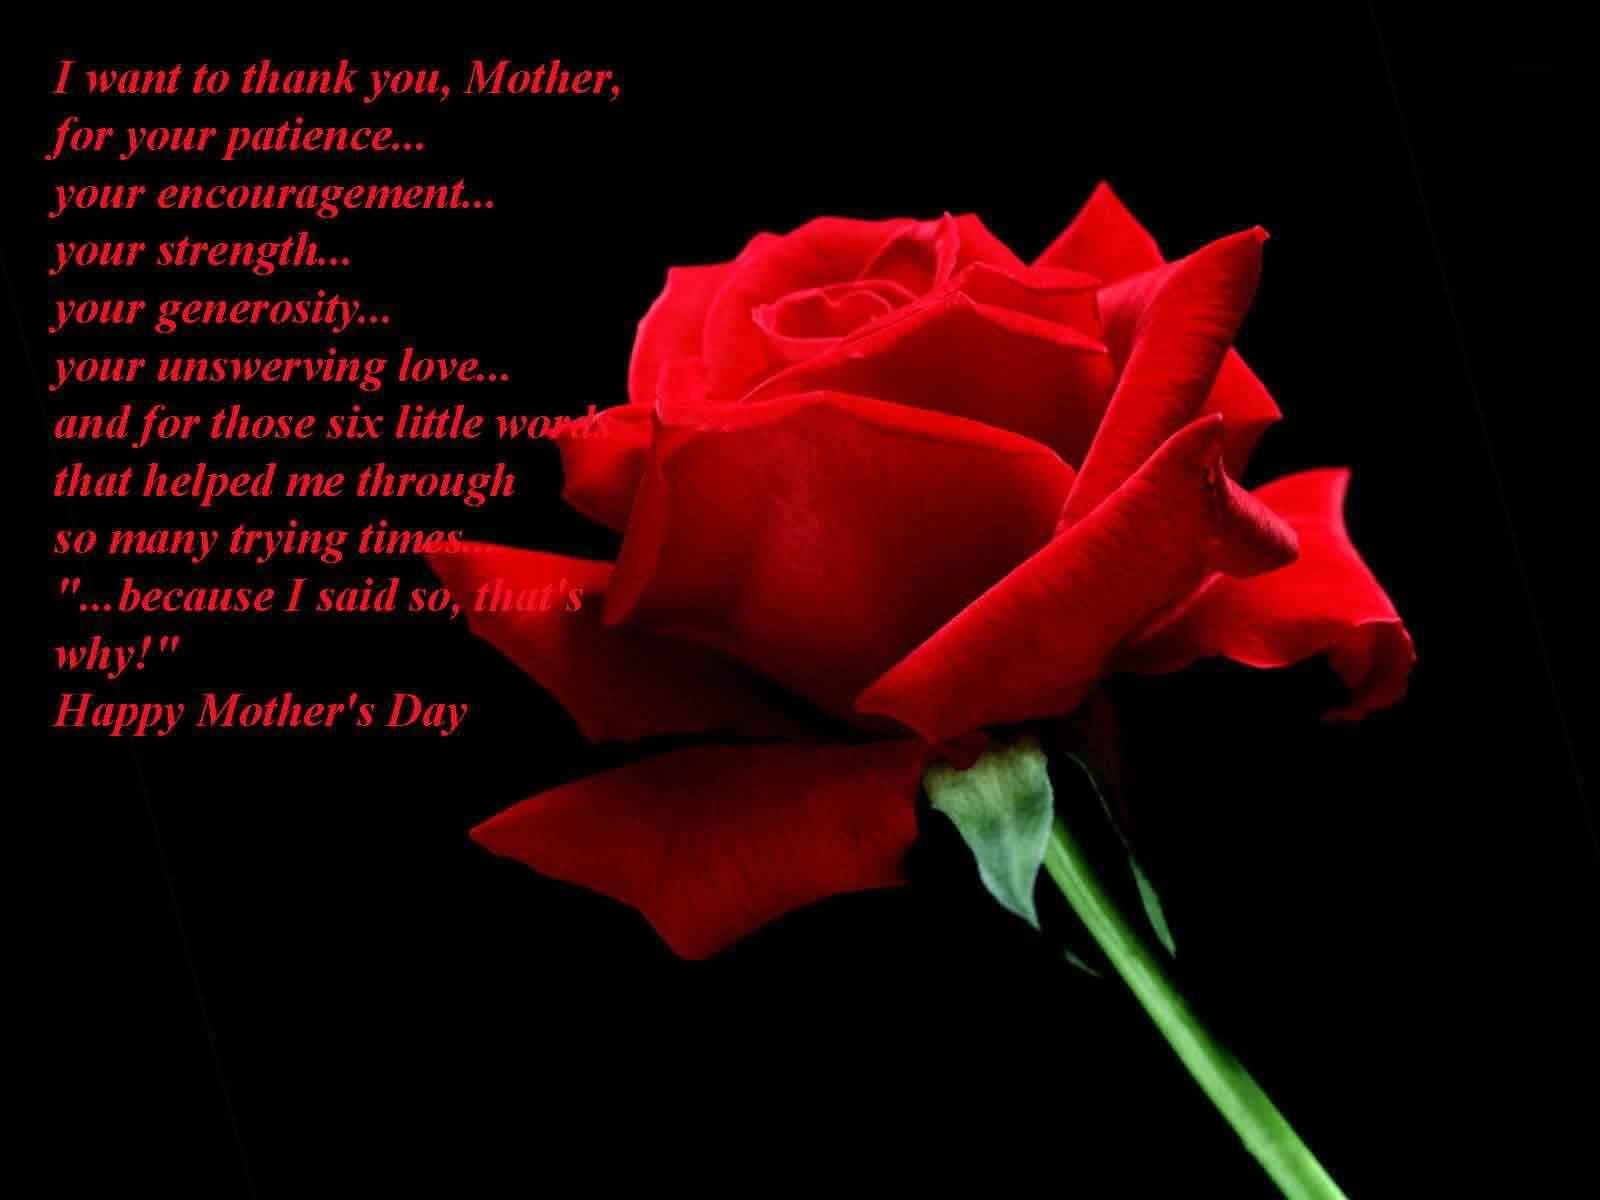 happy mothers day wishes poet greetings hd wallpaper